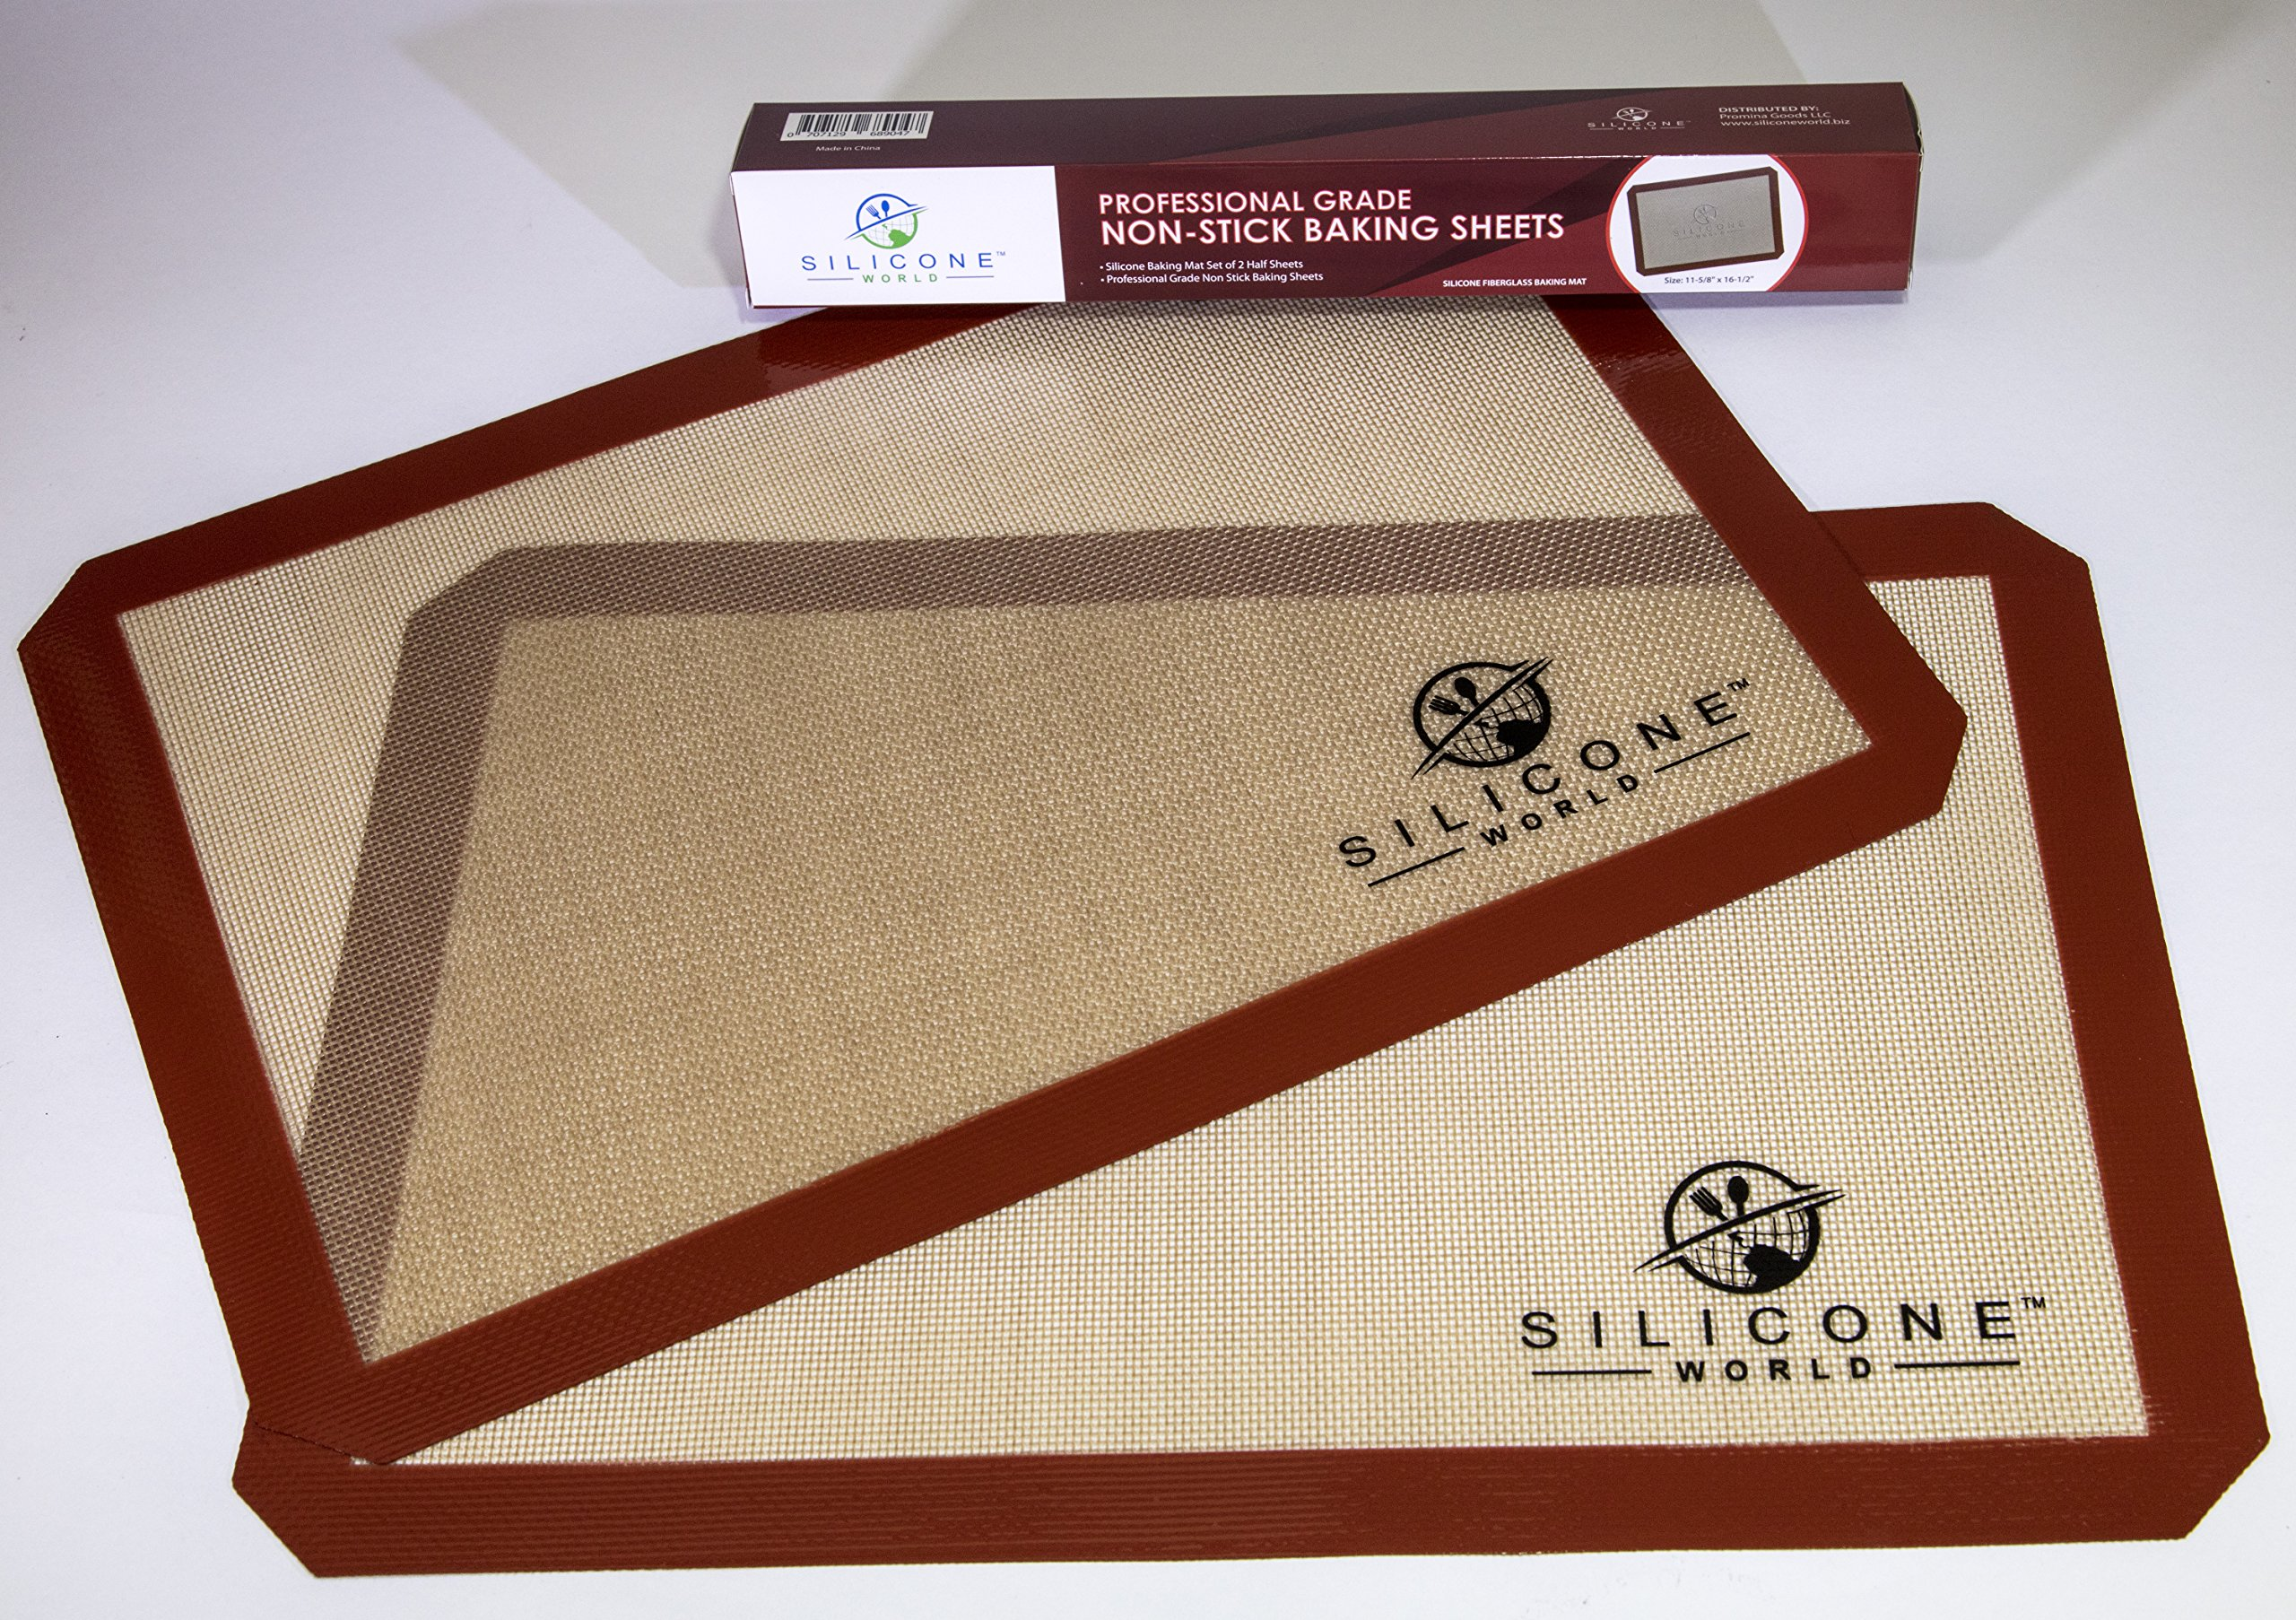 Silicone World - Professional Grade Silicone Baking Mat - Incredible Reusable 2-Pack, Durable, Non-stick Fiberglass 11-5/8 x 6-1/2 Oven Sheets, Eco-friendly, Non-toxic and BPA-free